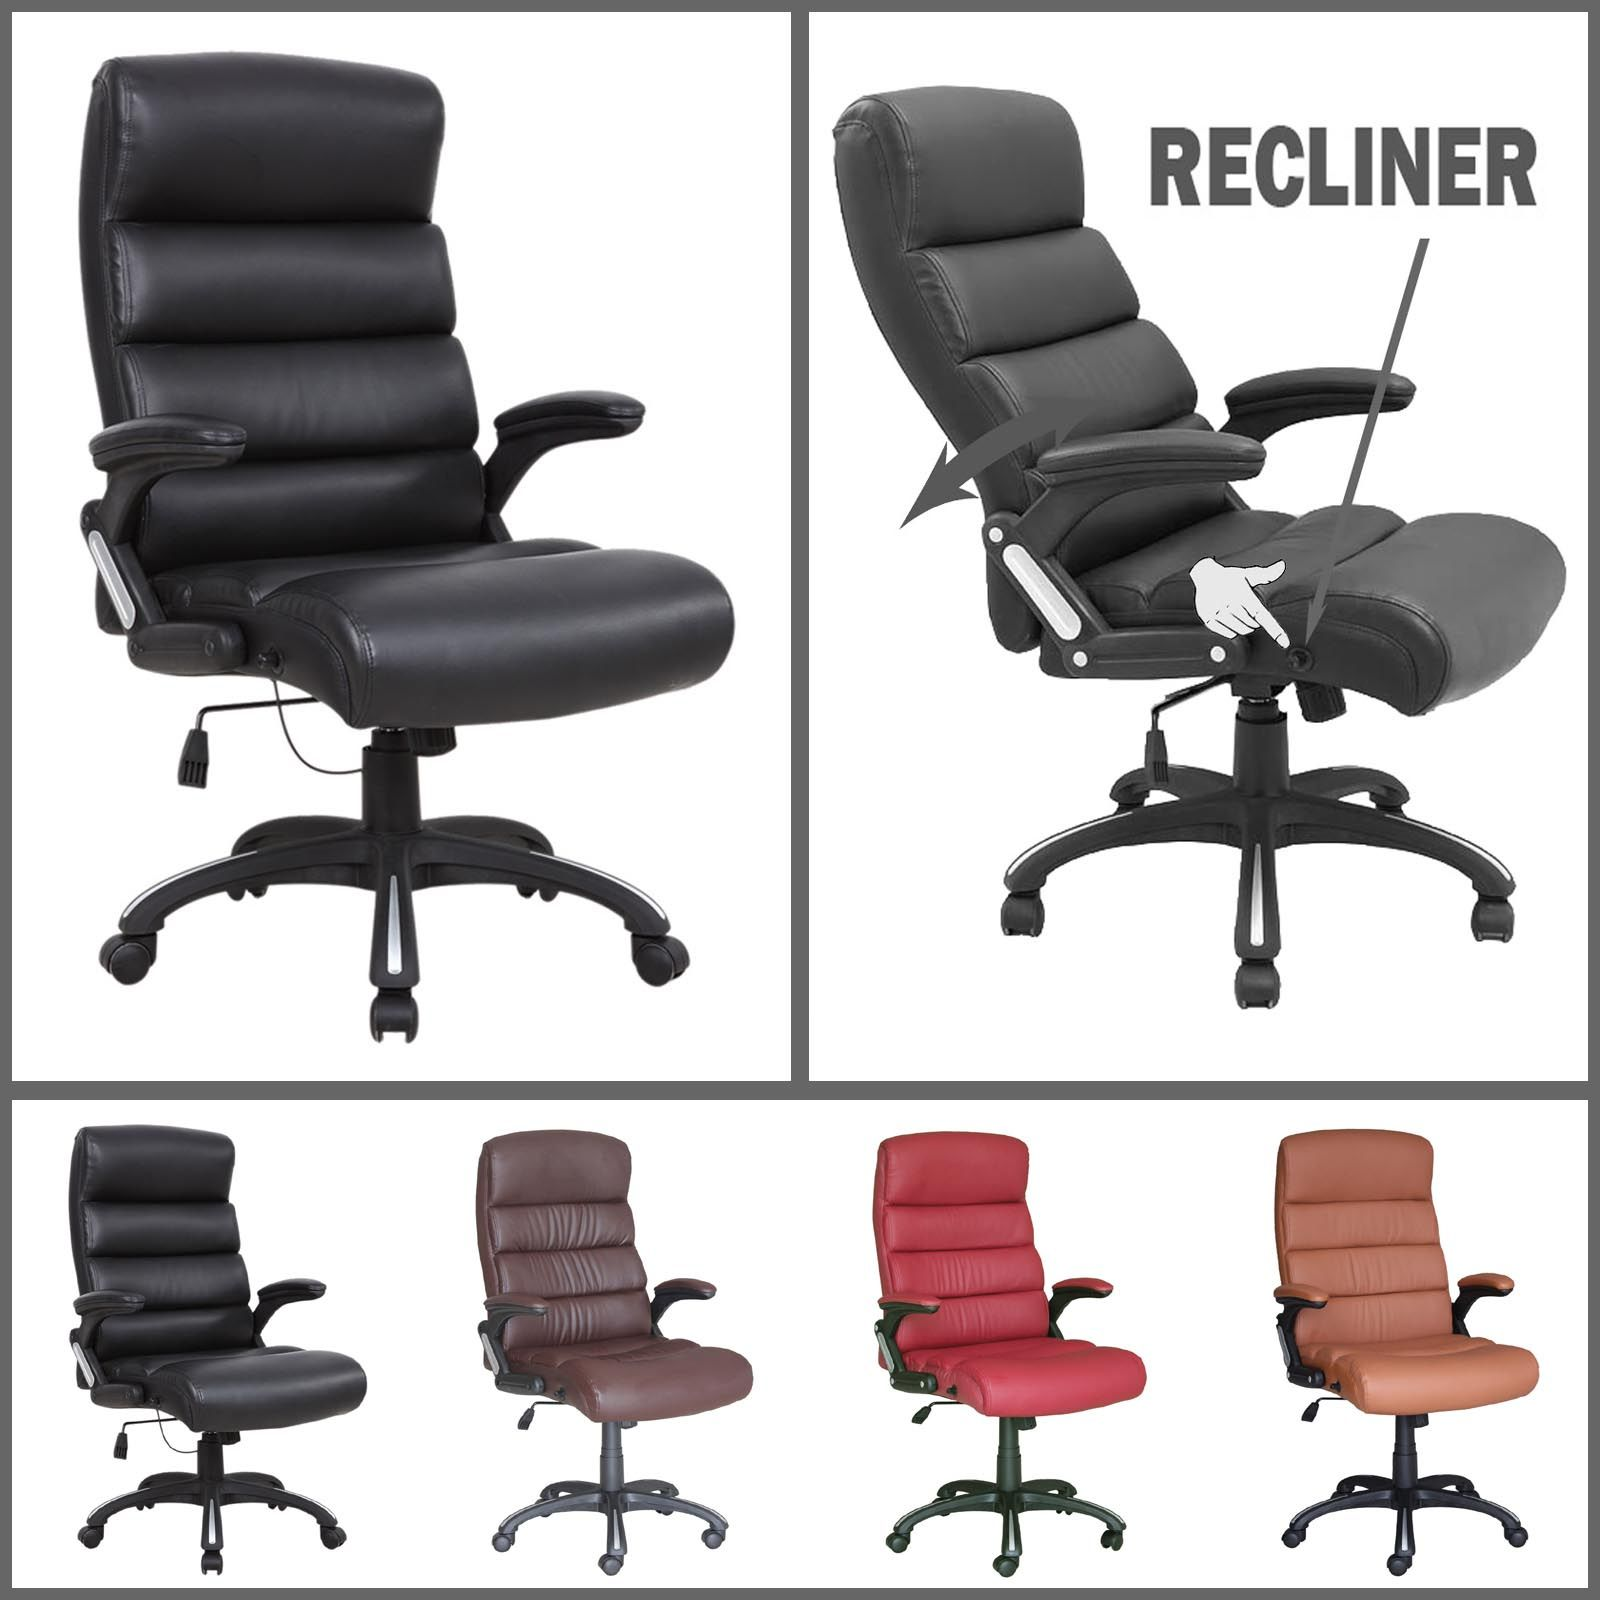 Pin by rahayu12 on xclusive office decoration Reclining